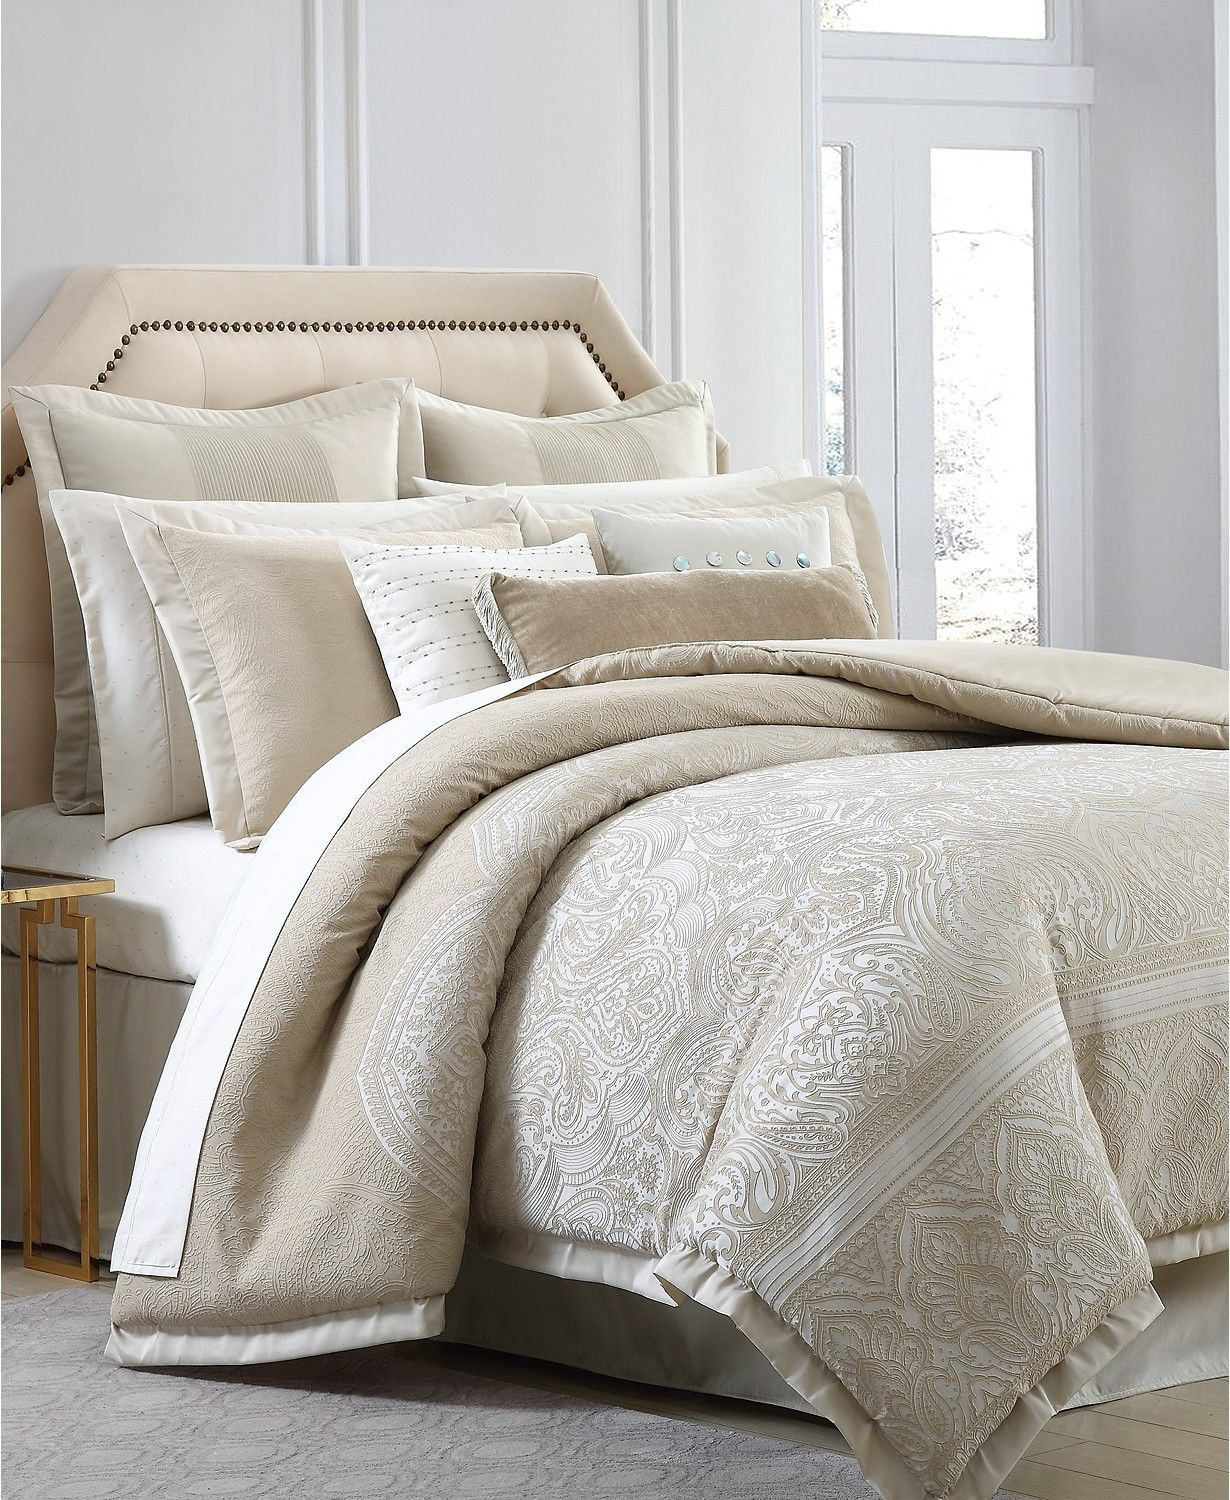 Charisma Bellissimo Duvet Cover Sets Reviews Bedding